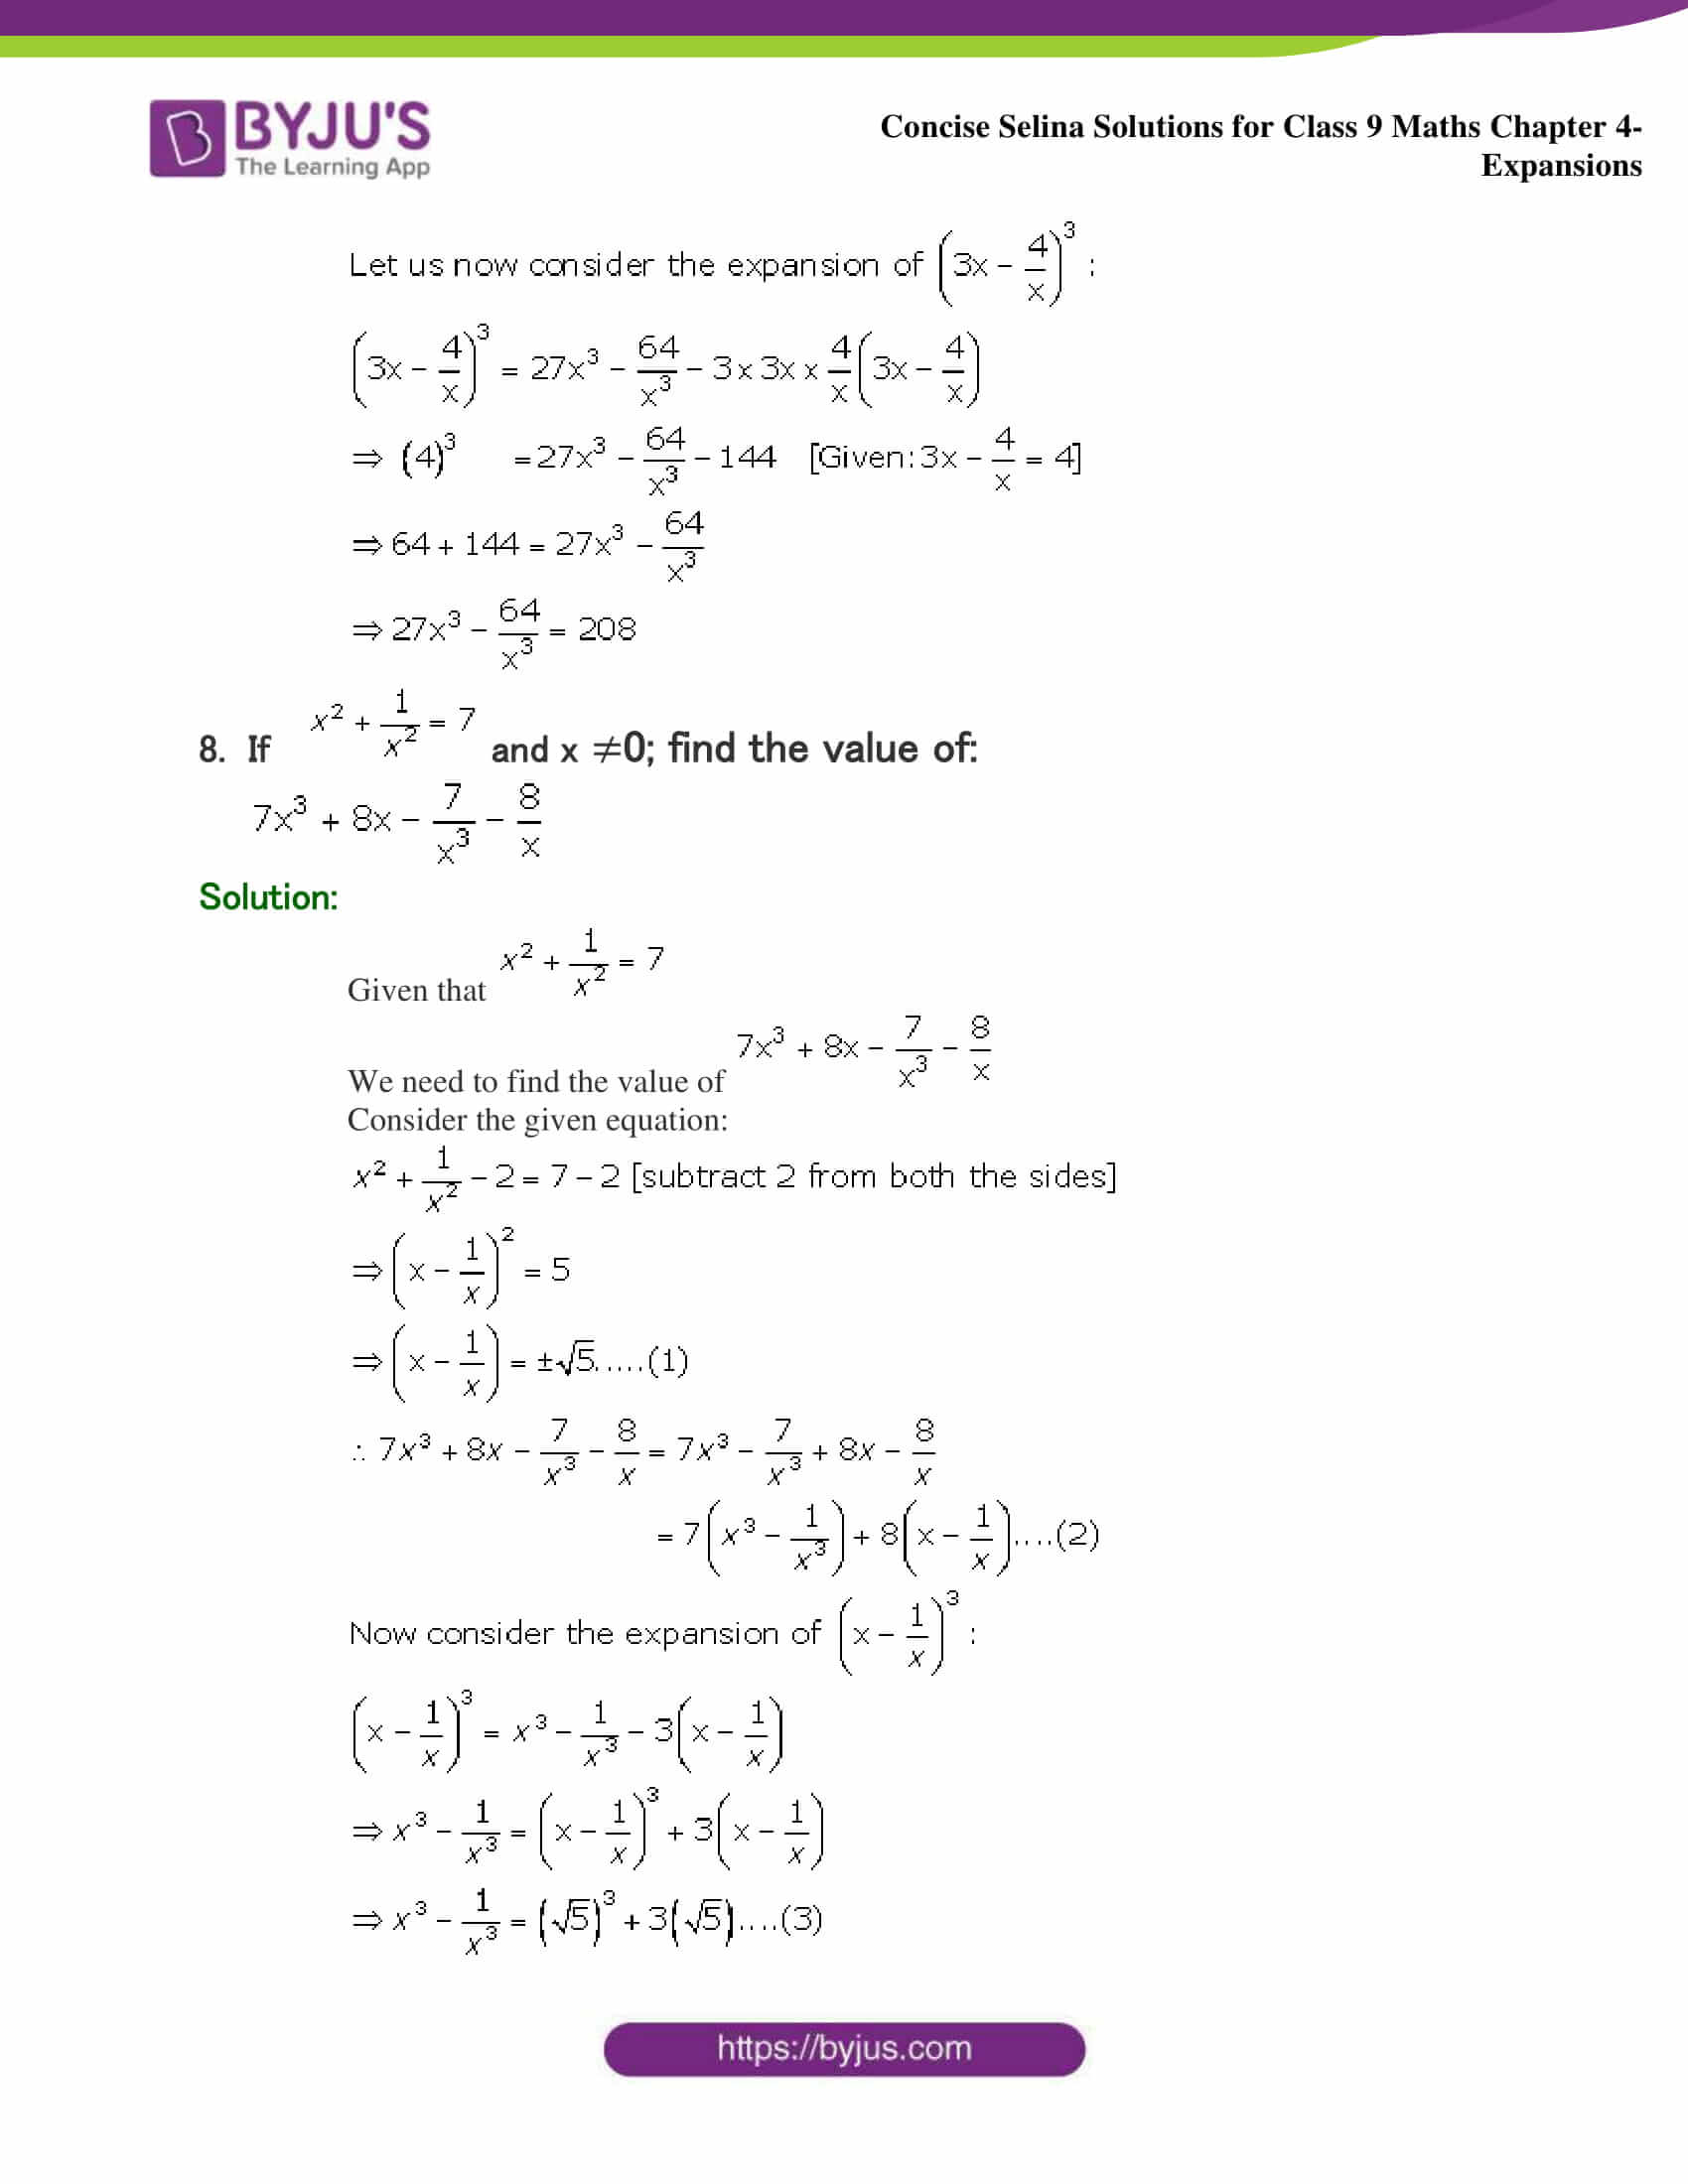 Selina Solutions Class 9 Maths Chapter 4 Expansions part 35